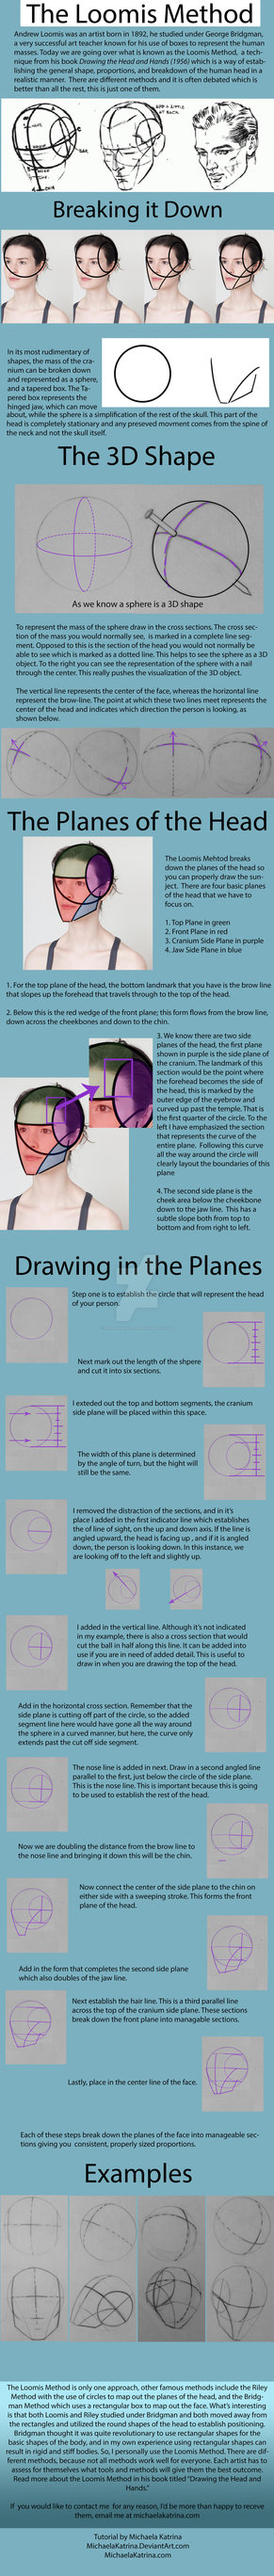 """Here is a quick over view of the Loomis Method, this method can also be found explained in detail in """"Drawing the Head and Hands"""" by Andrew Loomis. This book will explain in detail the steps as wel..."""